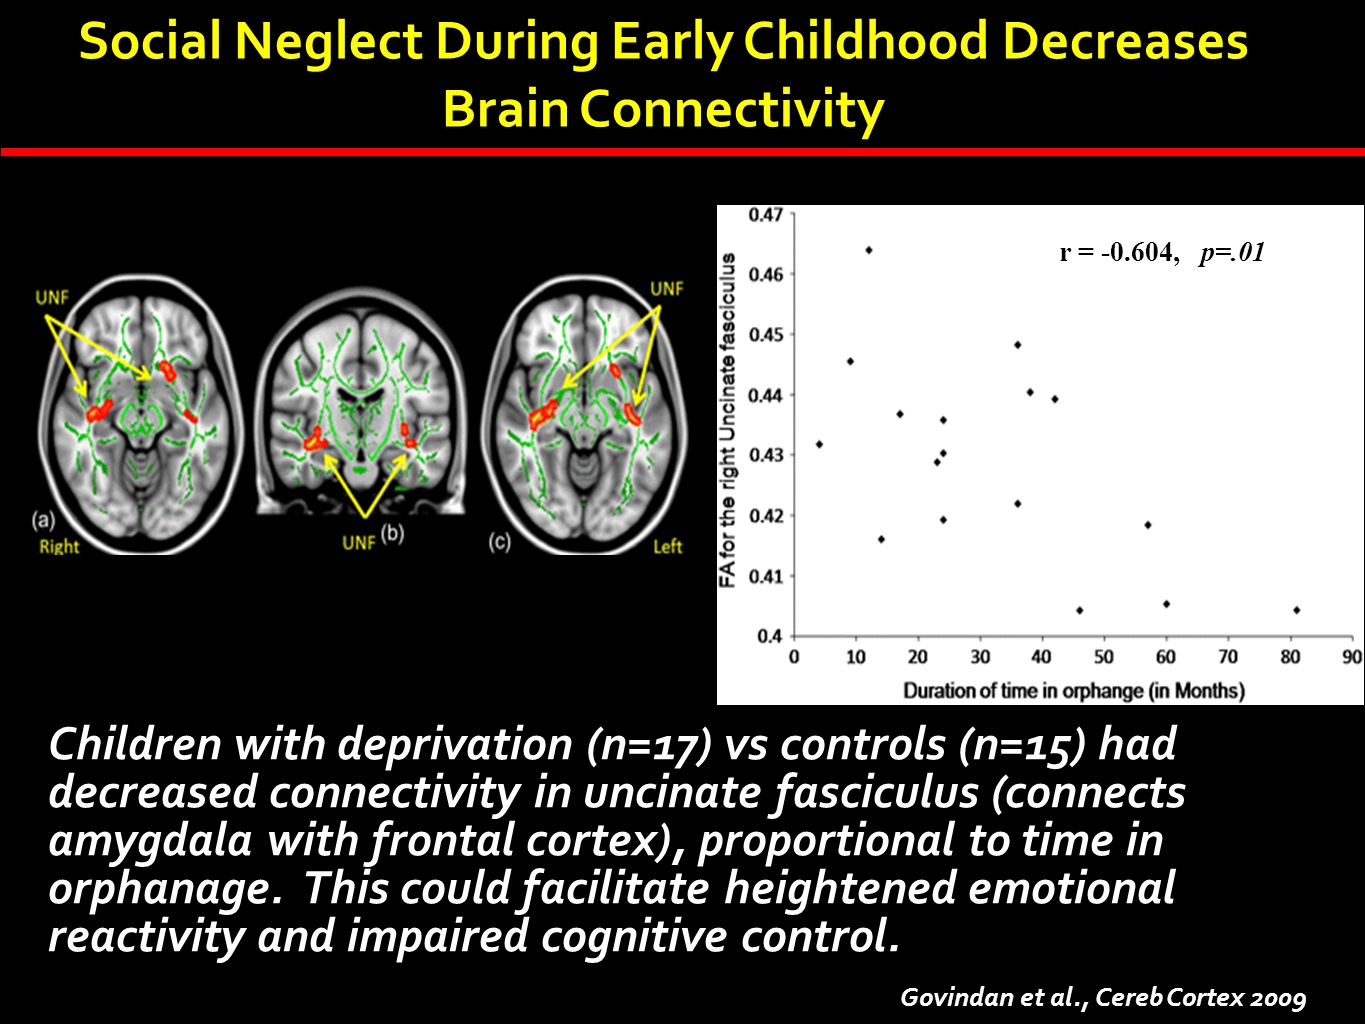 Social Neglect During Early Childhood Decreases Brain Connectivity